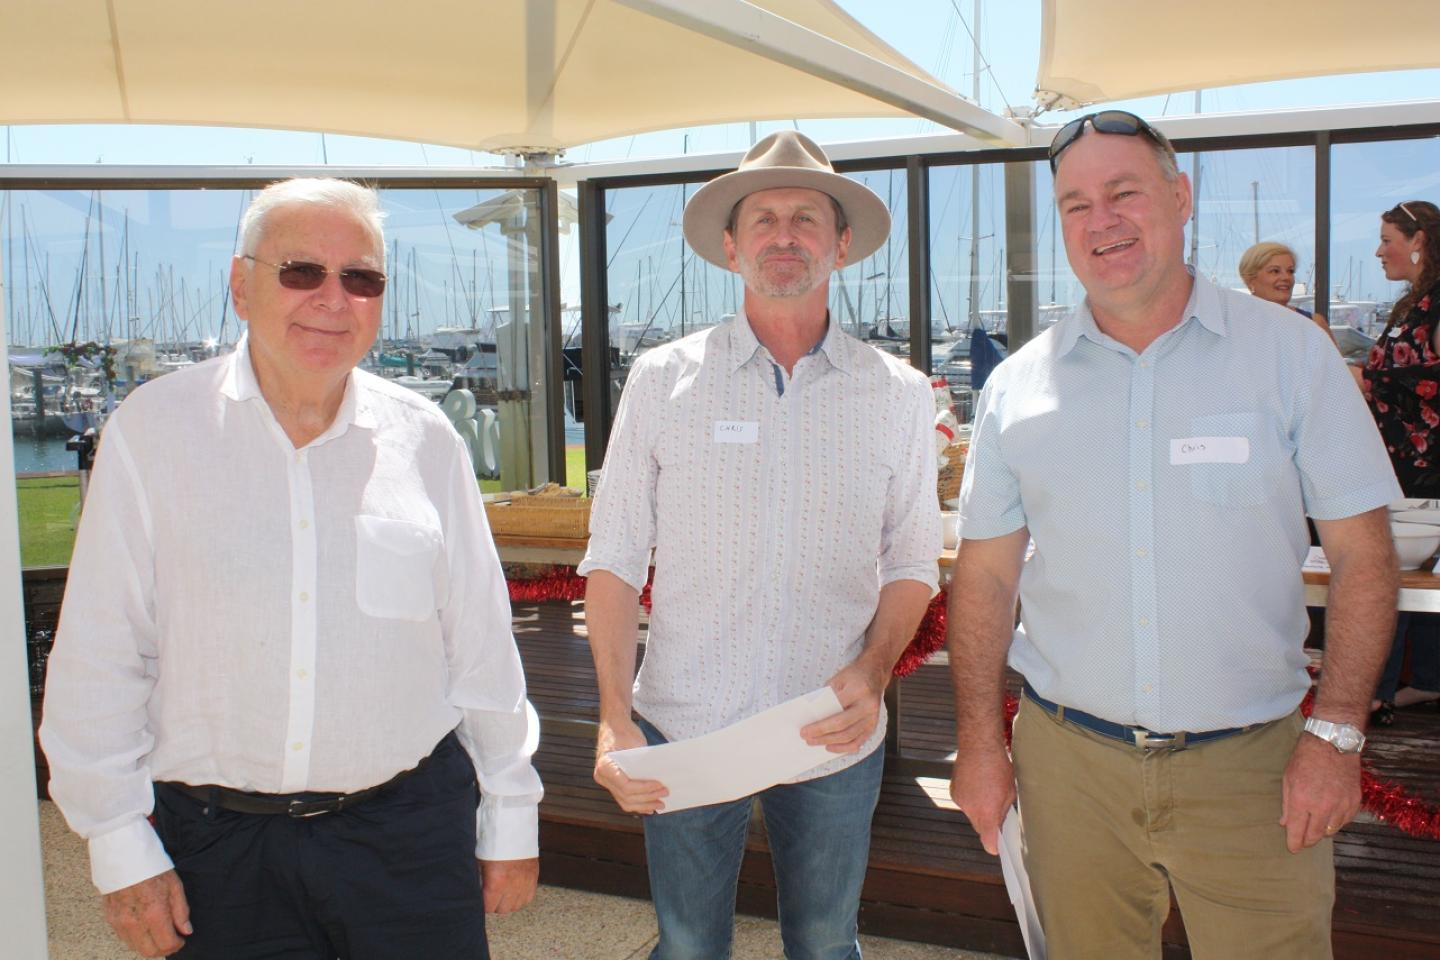 Ausplow sales and marketing manager Chris Blight (middle) was recognised for his 10 years' service with the company. Flanking him are Managing Director John Ryan AM and General Manager Chris Farmer.